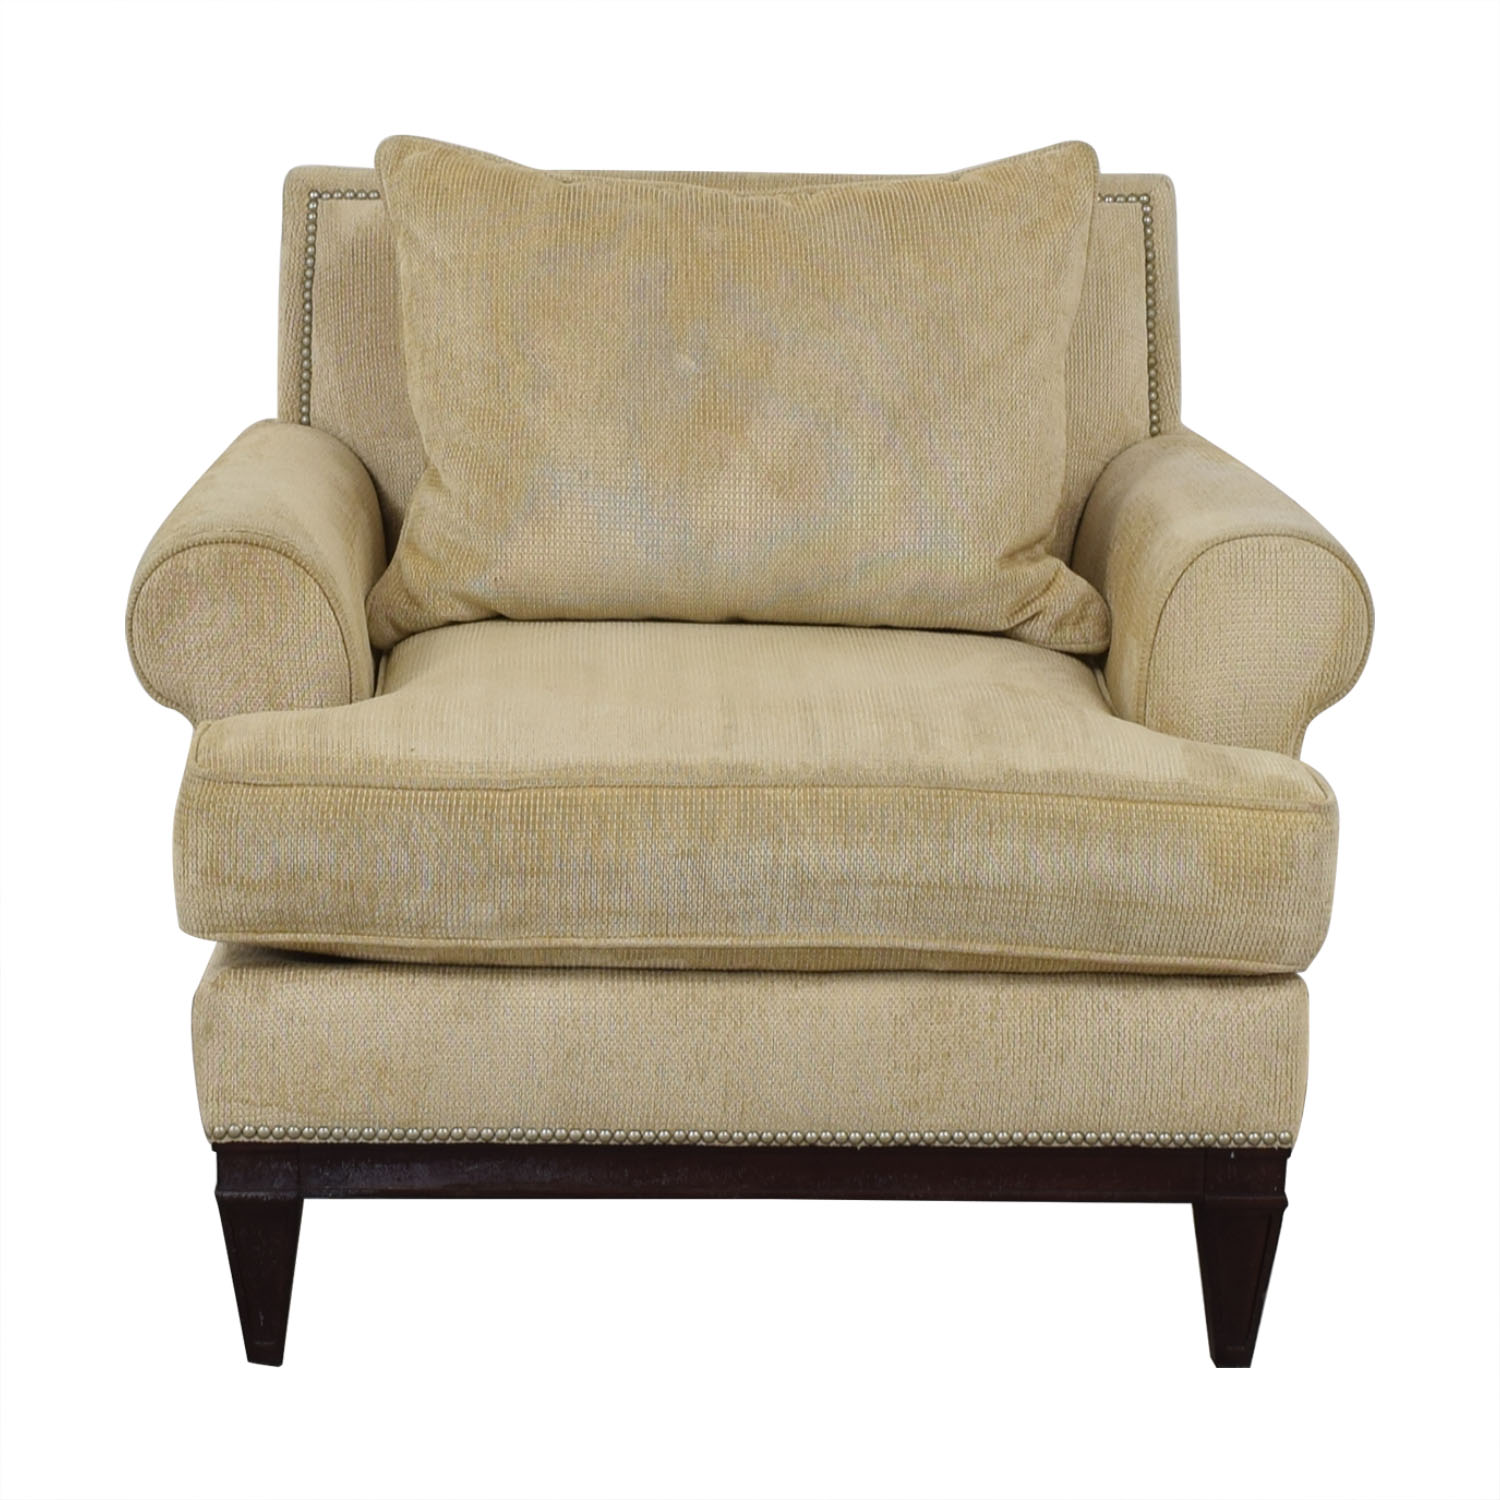 Bernhardt Roll Arm Accent Chair sale